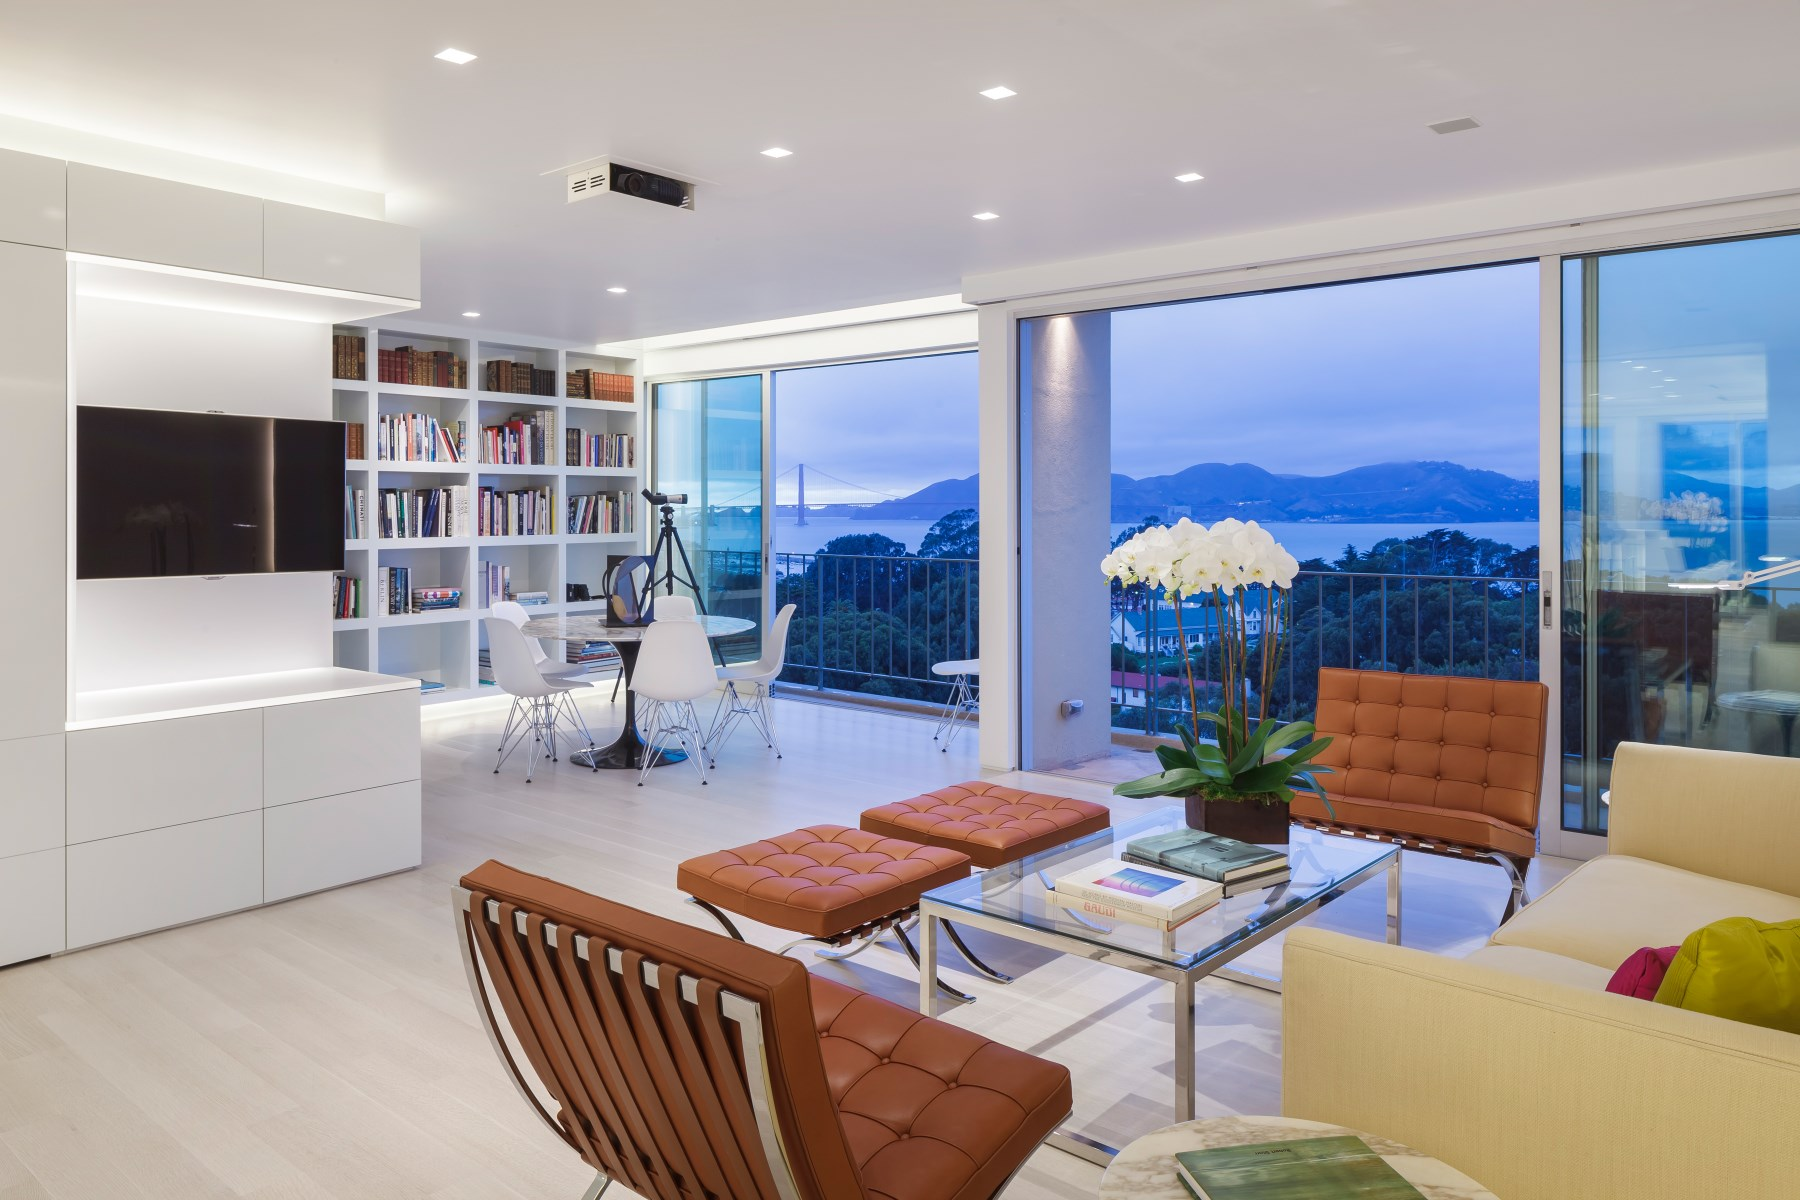 Co-op for Sale at Quintessential Modern View Co-Op 1050 North Pt # 1502-1503A Russian Hill, San Francisco, California, 94109 United States